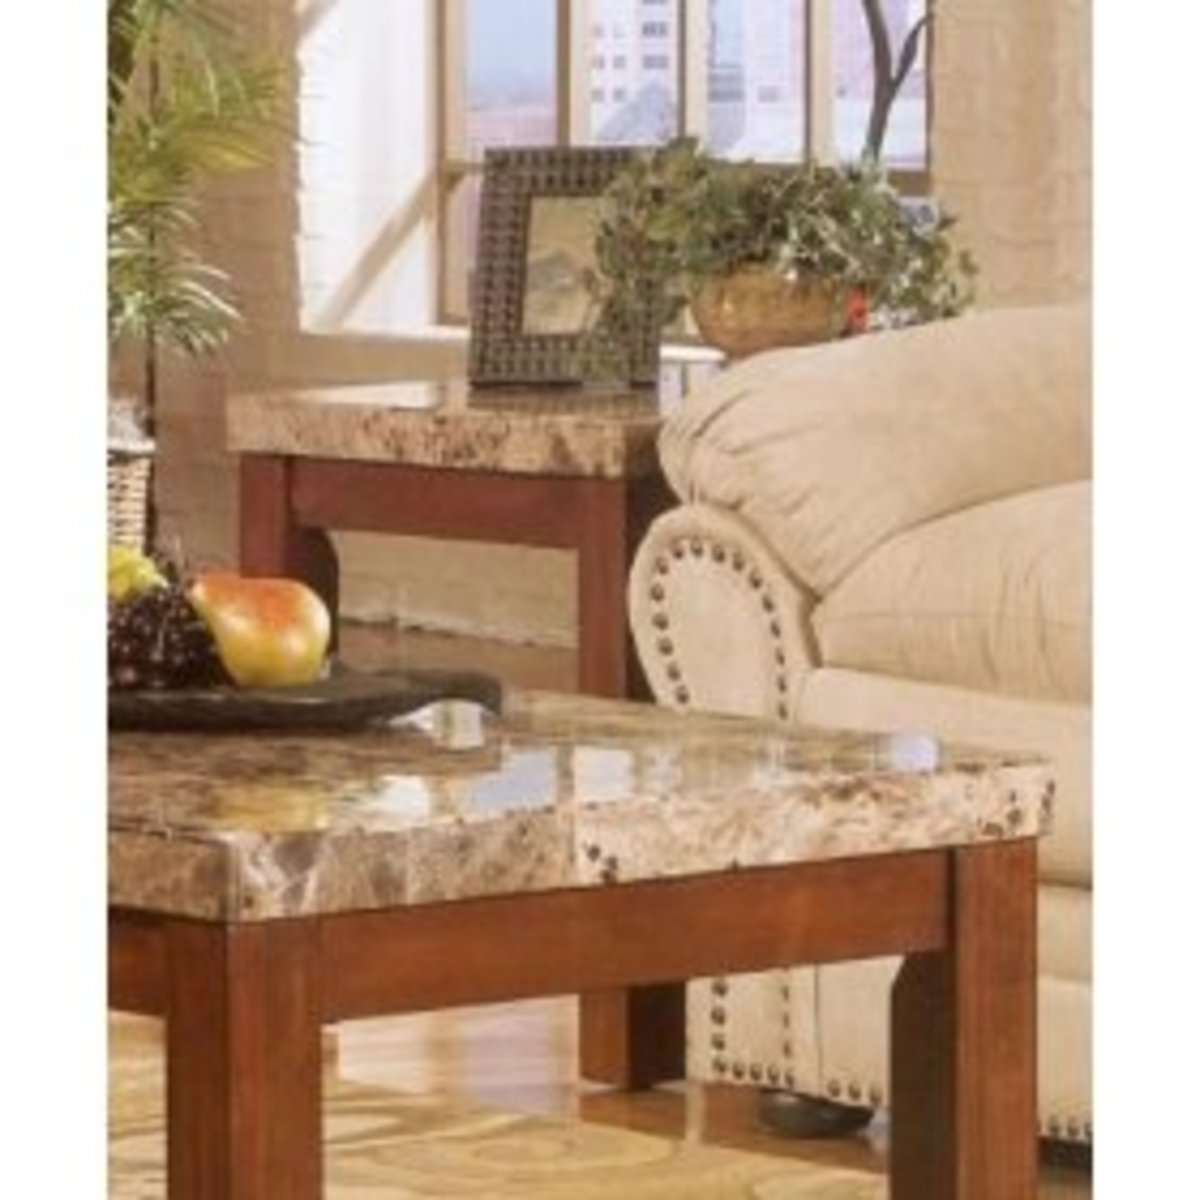 Marble Tables - Pros and Cons